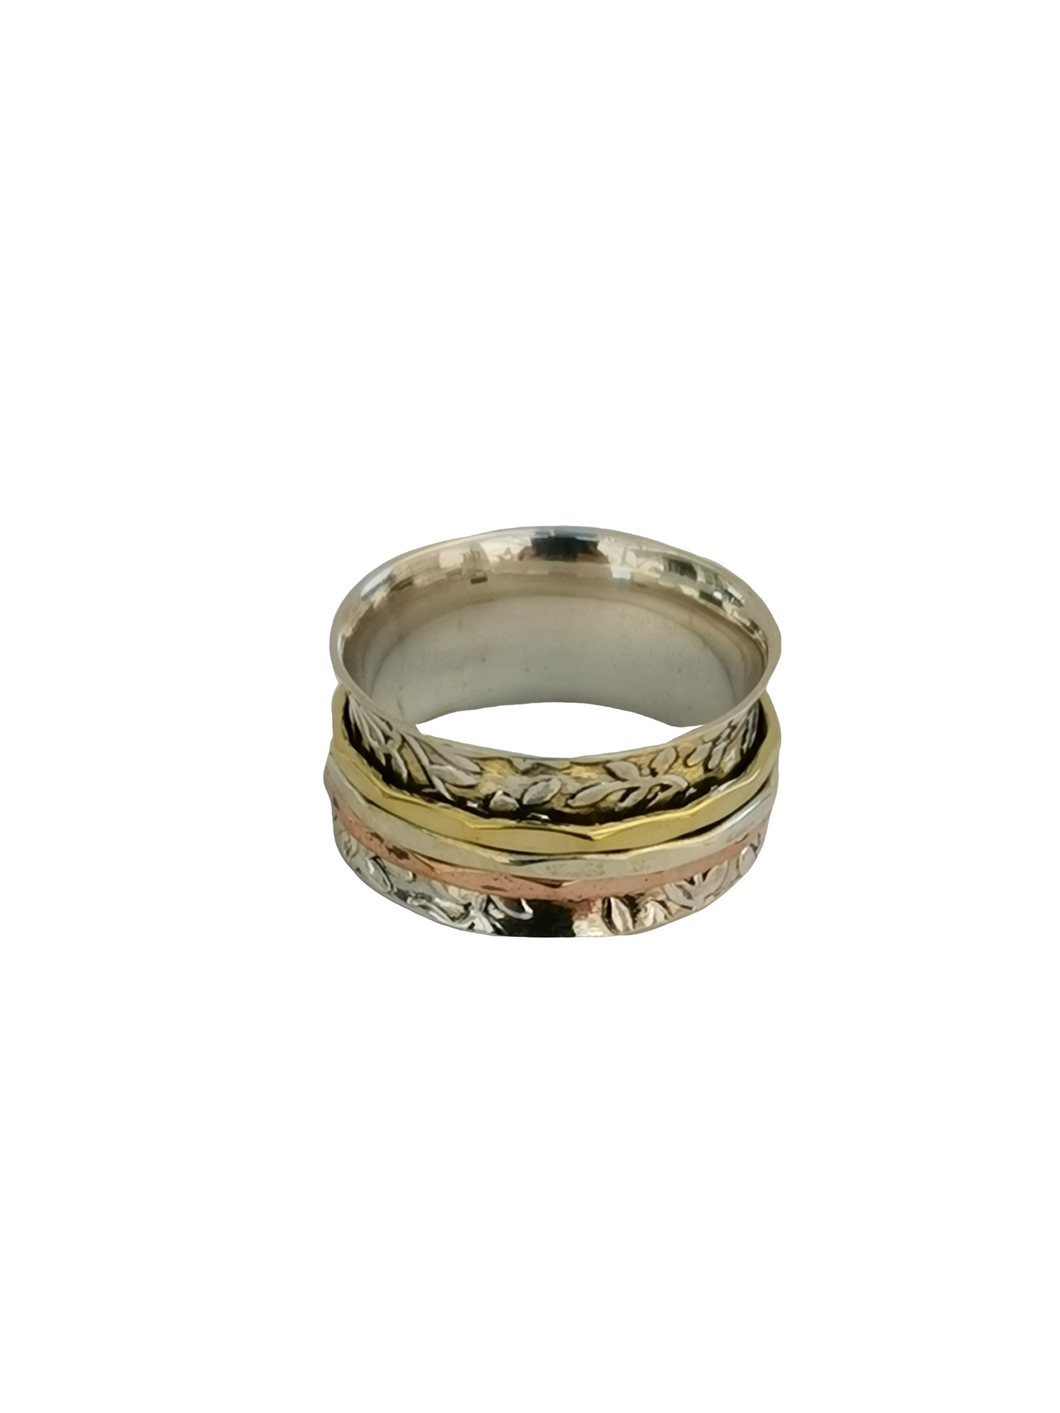 925 Sterling Silver Spinning Ring (Worry Ring) - Oxidized Floral Band with Brass/Silver/Copper Rings